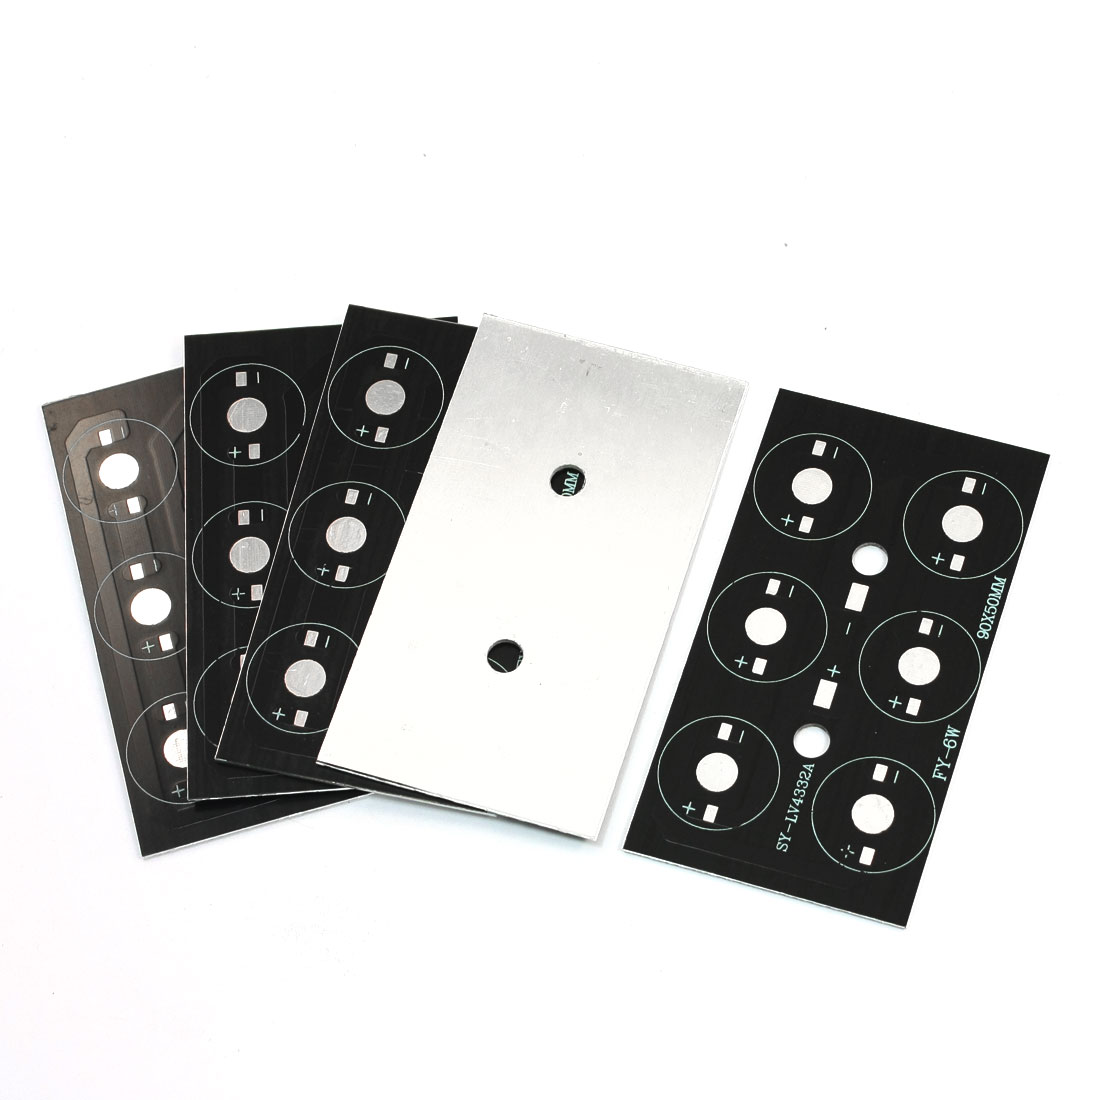 5 Pcs 9cm x 5cm Rectangular Aluminum Plate PCB Circuit Board DIY for 1W/3W High Power 6LEDs in Series